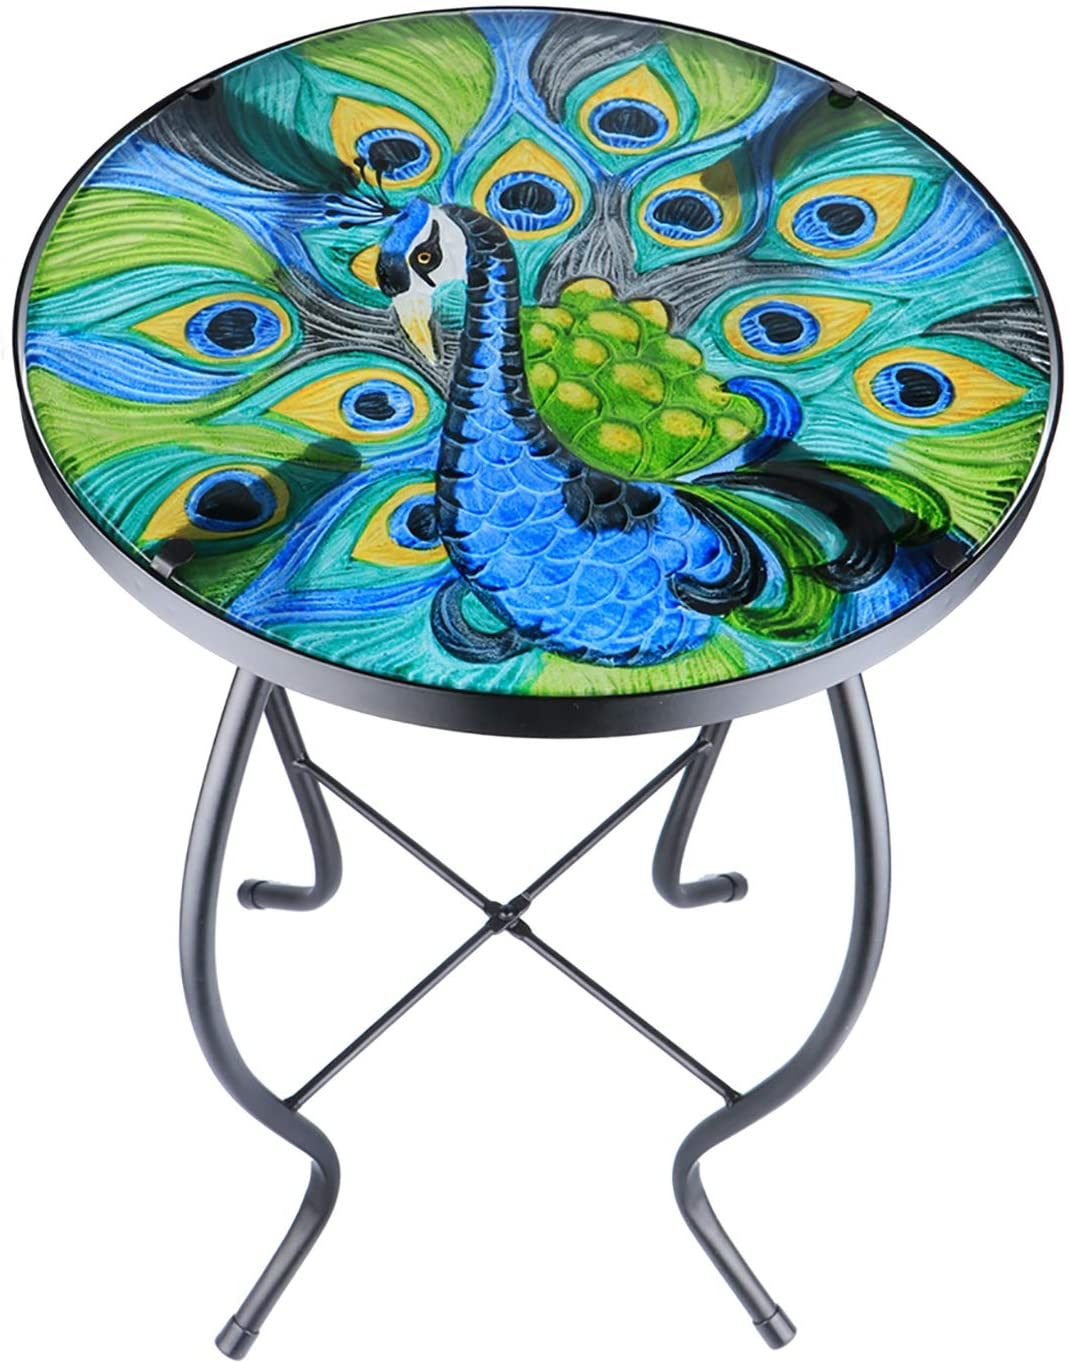 Patio Side Table Plant Stands Outdoor Accent Table Small Mosaic Table Glass Top Round Balcony Coffee Table (14